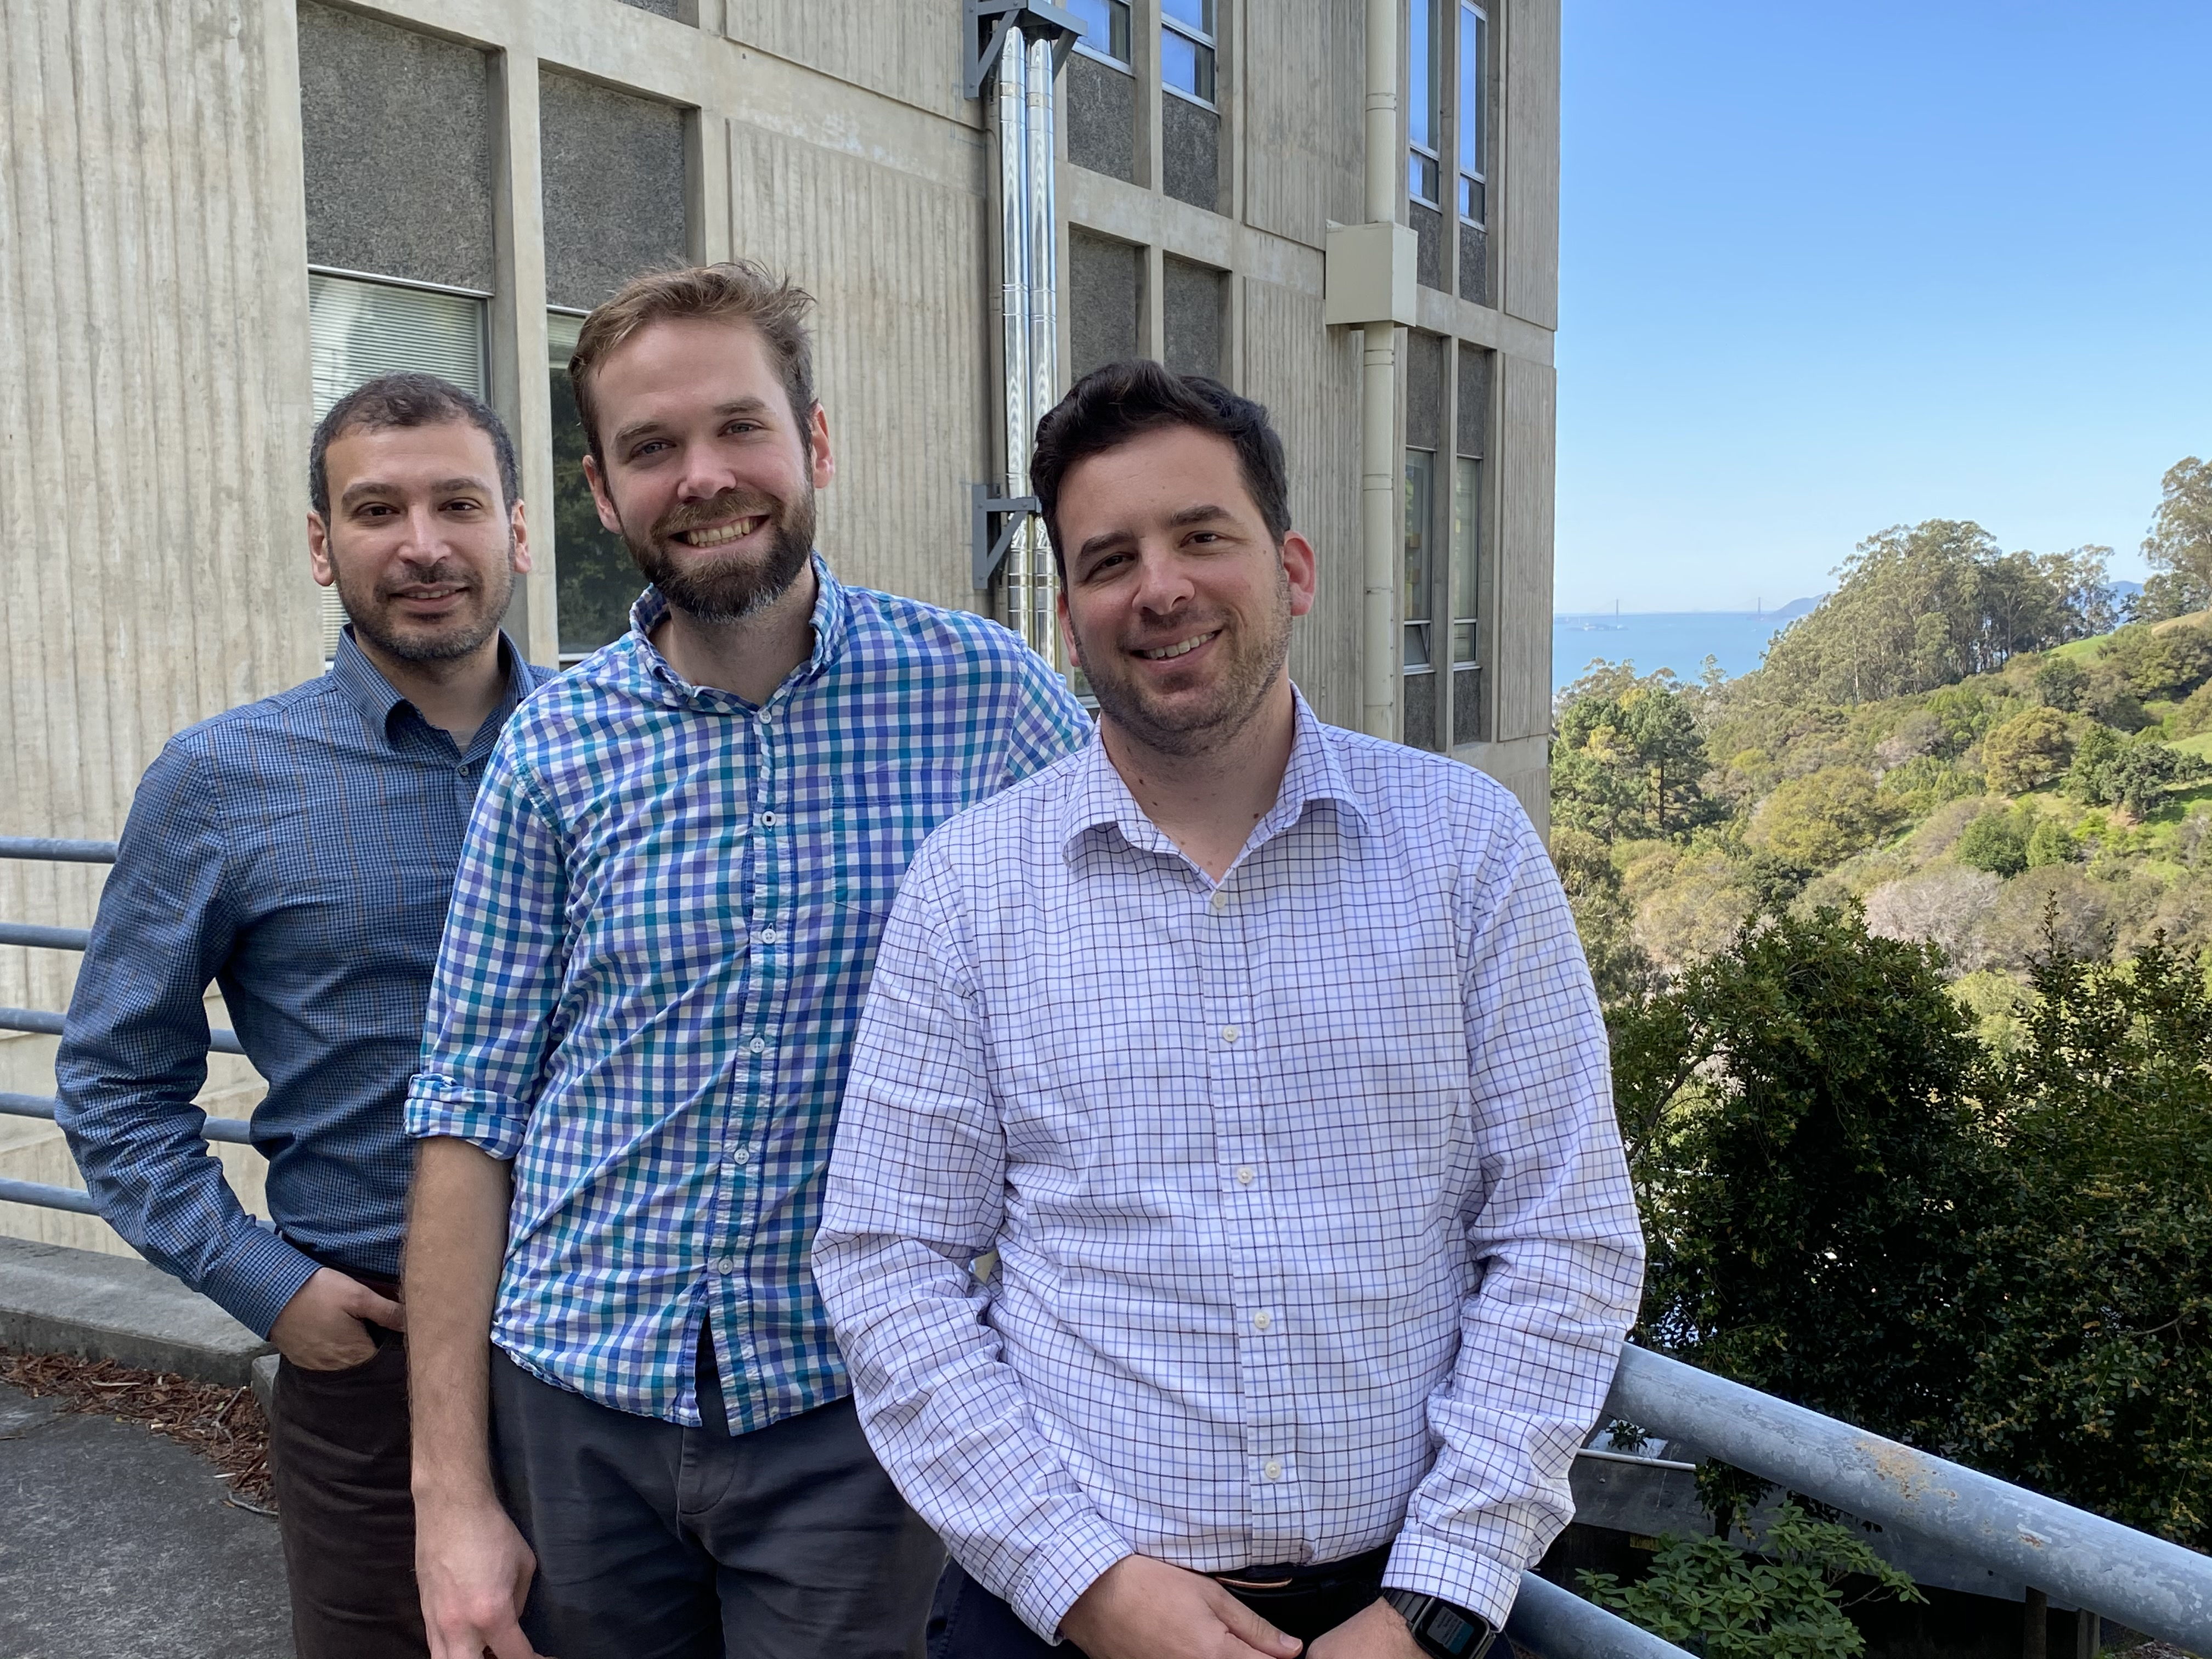 Left to Right: Ahmet Kusoglu, Andrew Crothers and Adam Weber